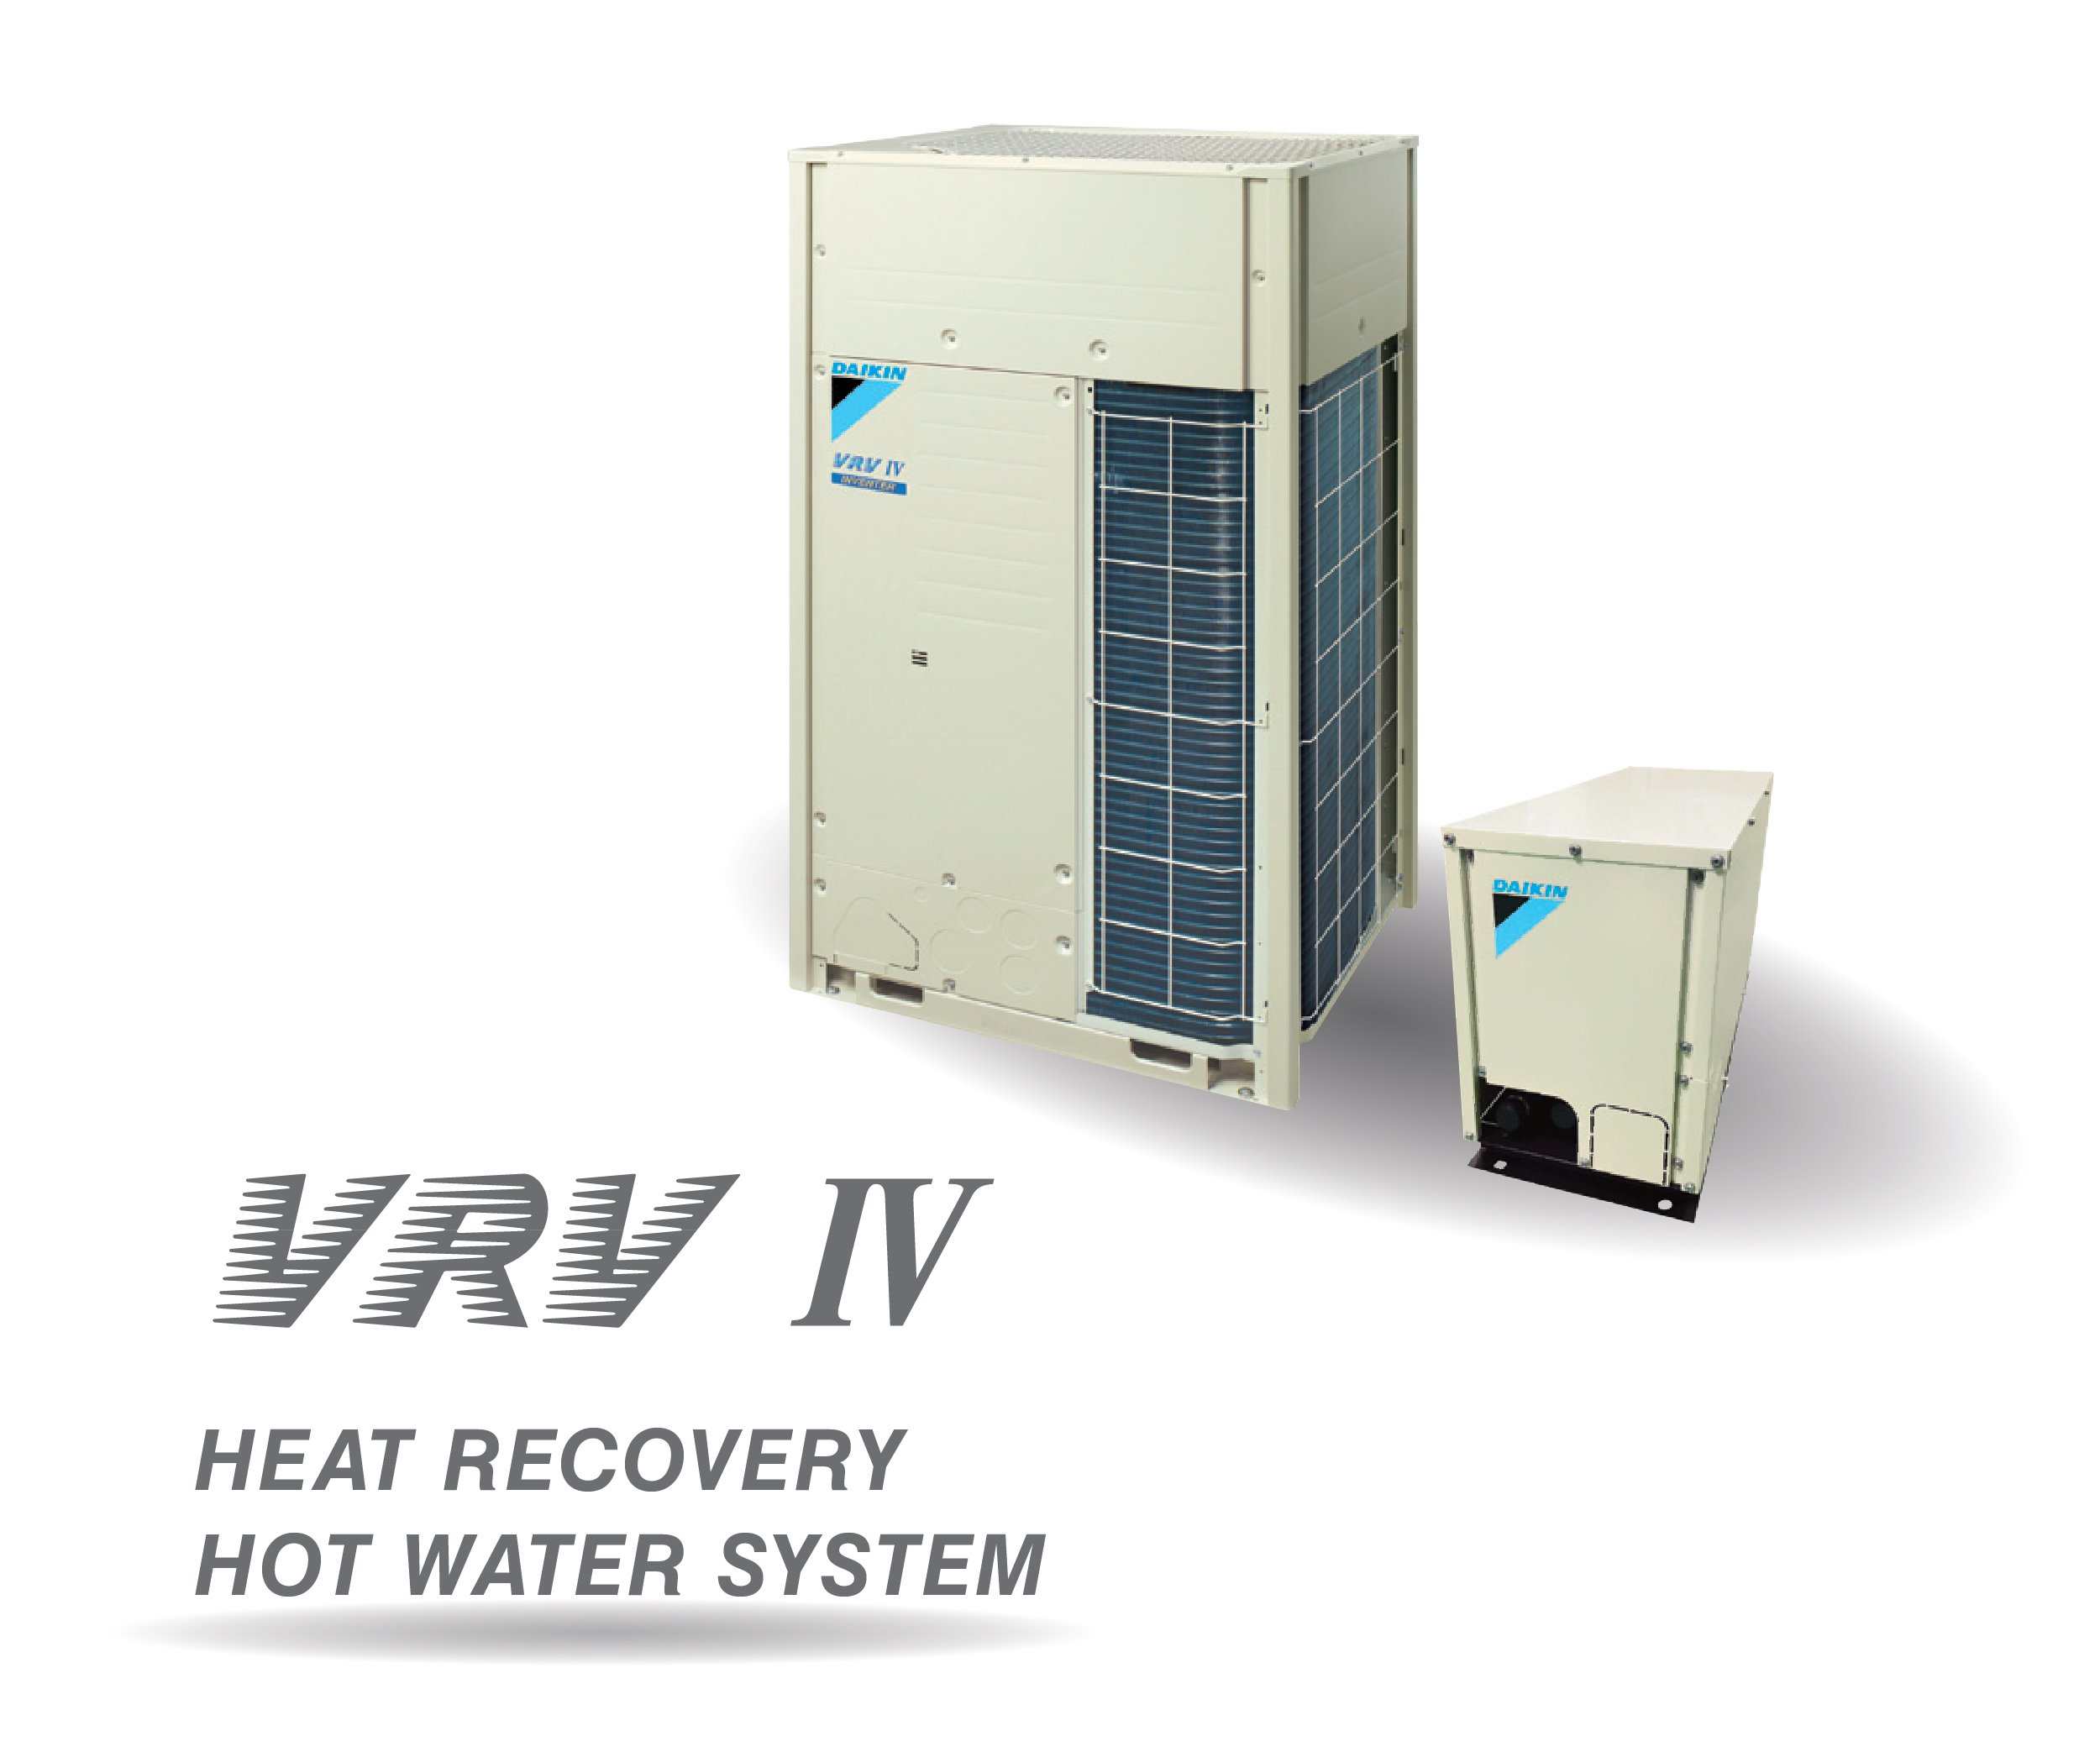 Daikin VRV IV Heat Recovery Hot Water centralized air